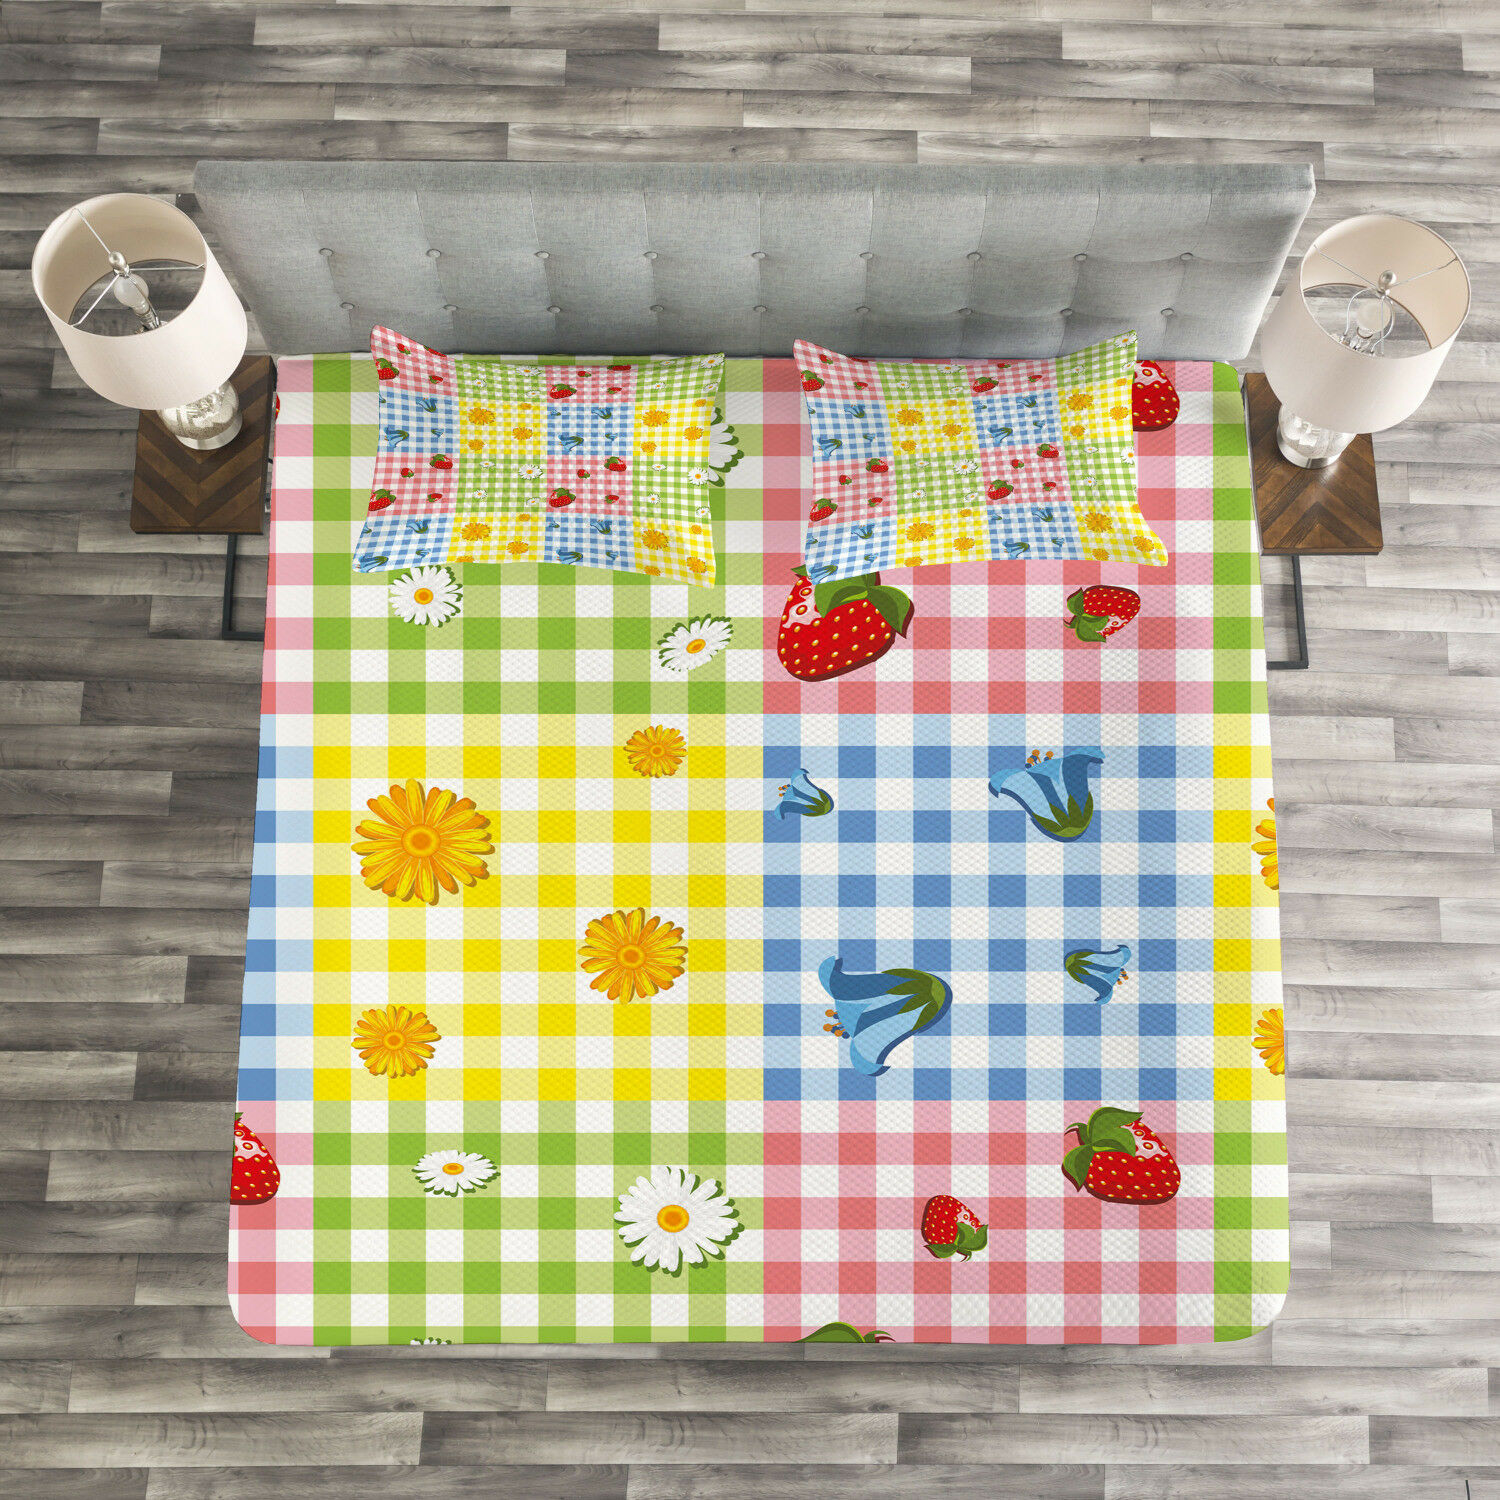 colorful Quilted Bedspread & Pillow Shams Set, Berries Flowers Picnic Print